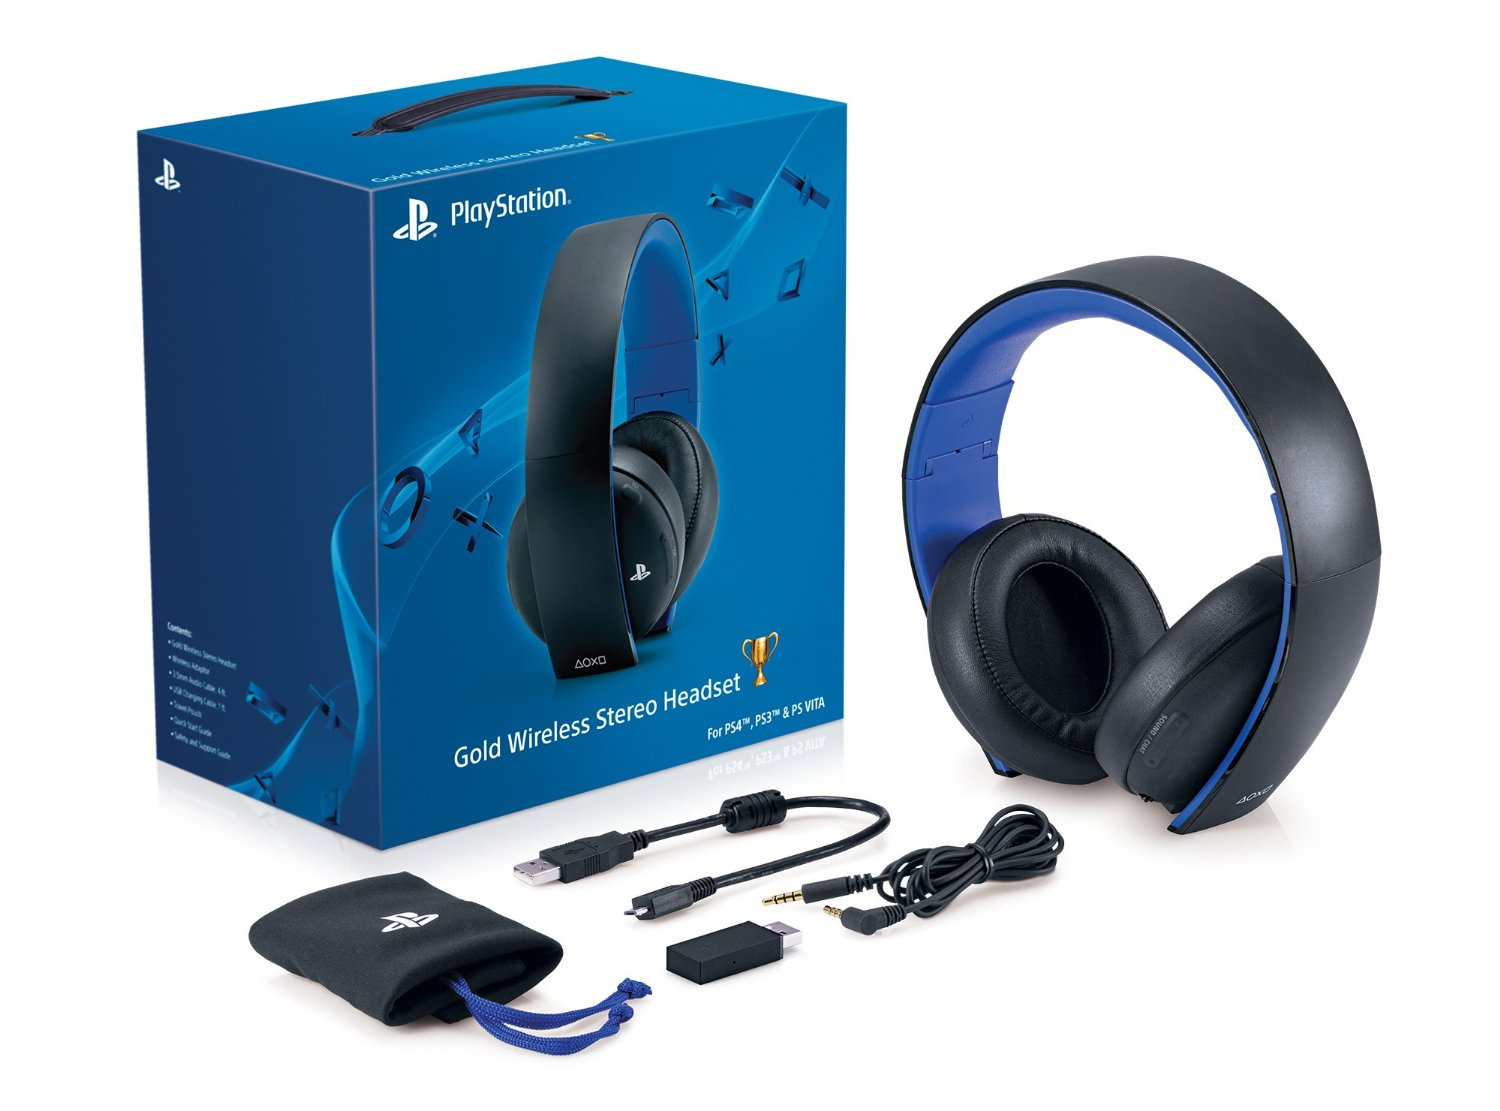 review playstation gold wireless stereo headset. Black Bedroom Furniture Sets. Home Design Ideas